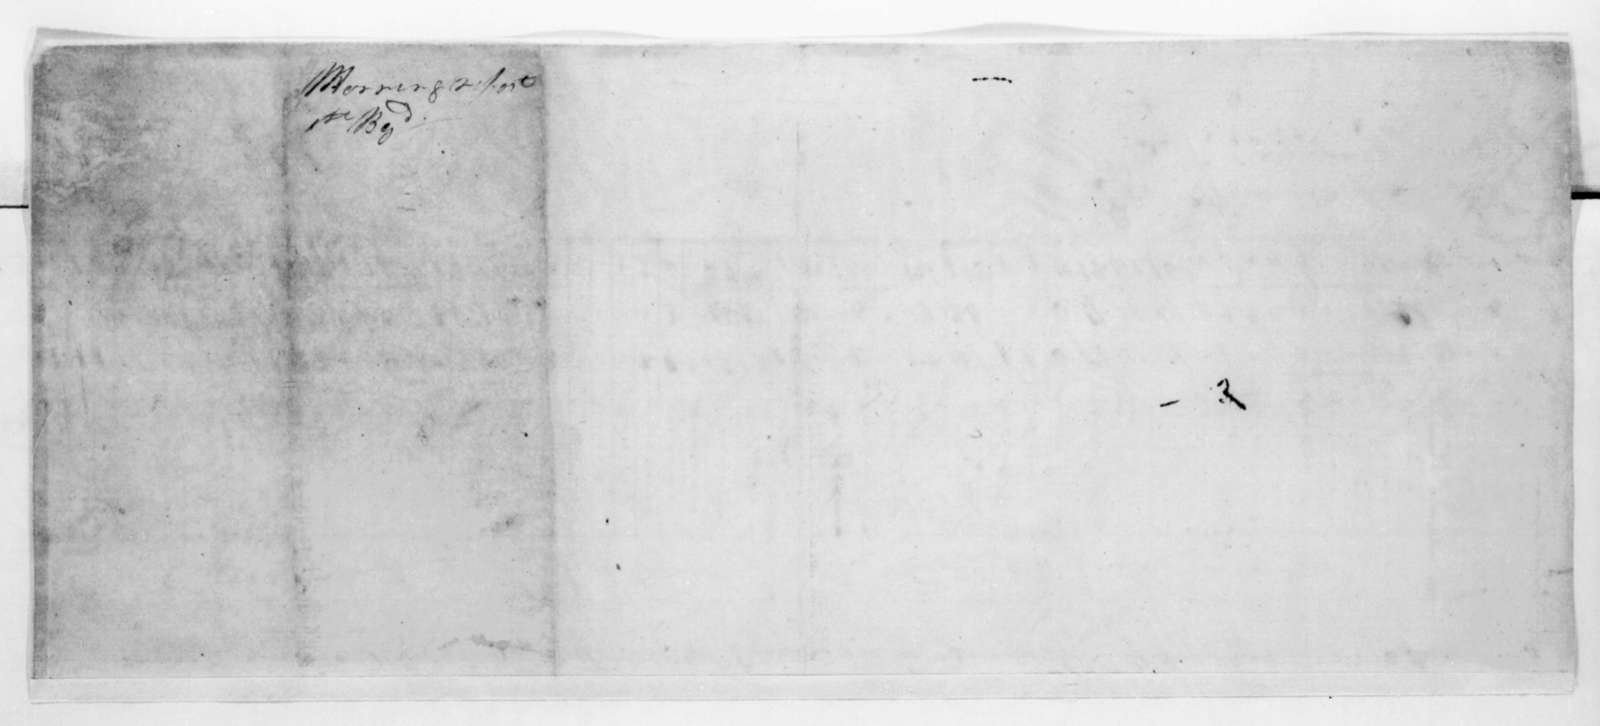 Military Papers - Oct. 5 - December 14, 1813, Vol. II